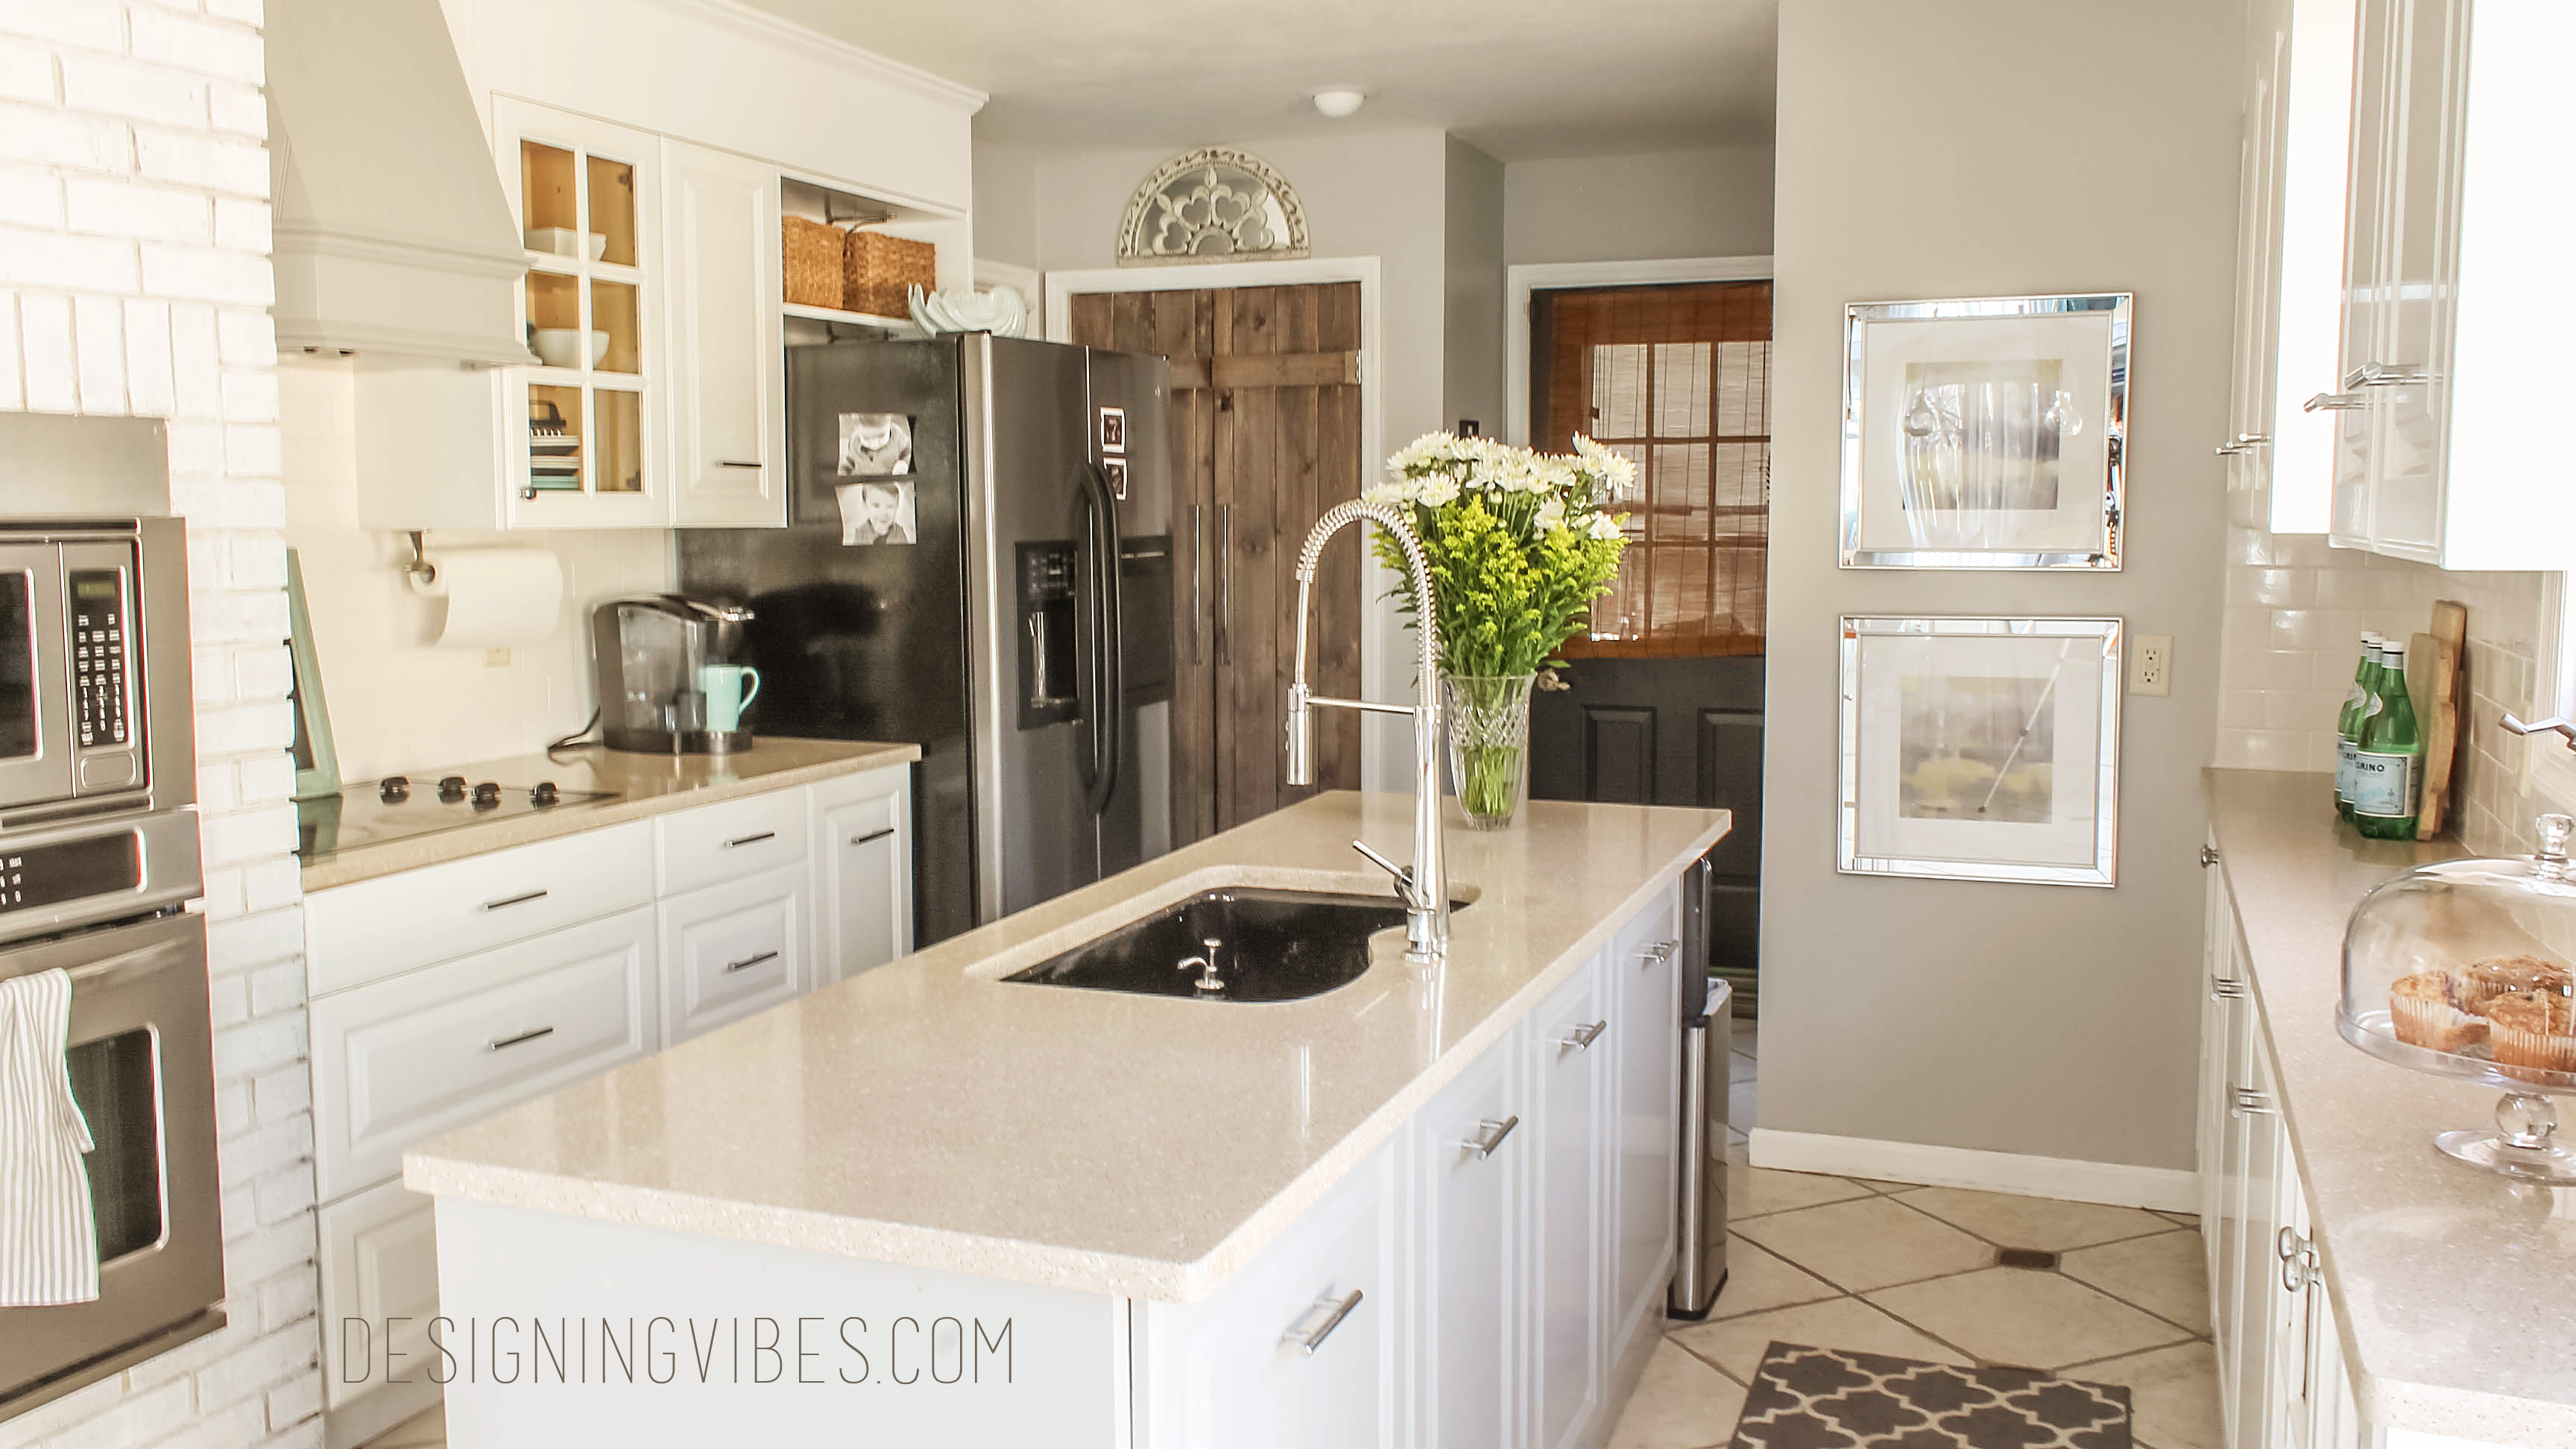 How to Make Kitchen Cabinets Taller - Designing Vibes ...